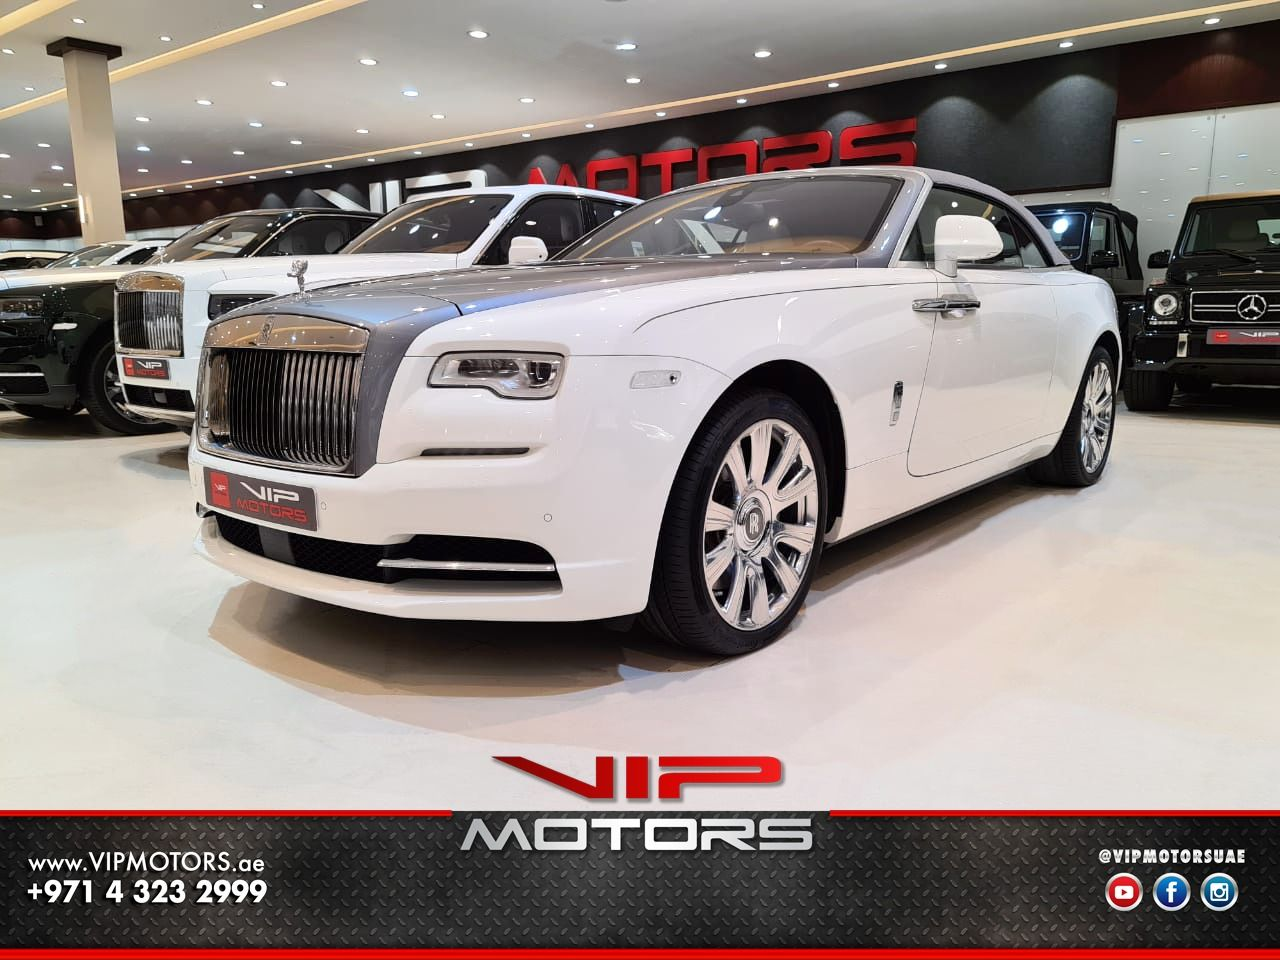 Rolls-Royce-Dawn-White-2016-Front-Side-View-Vip-Motors